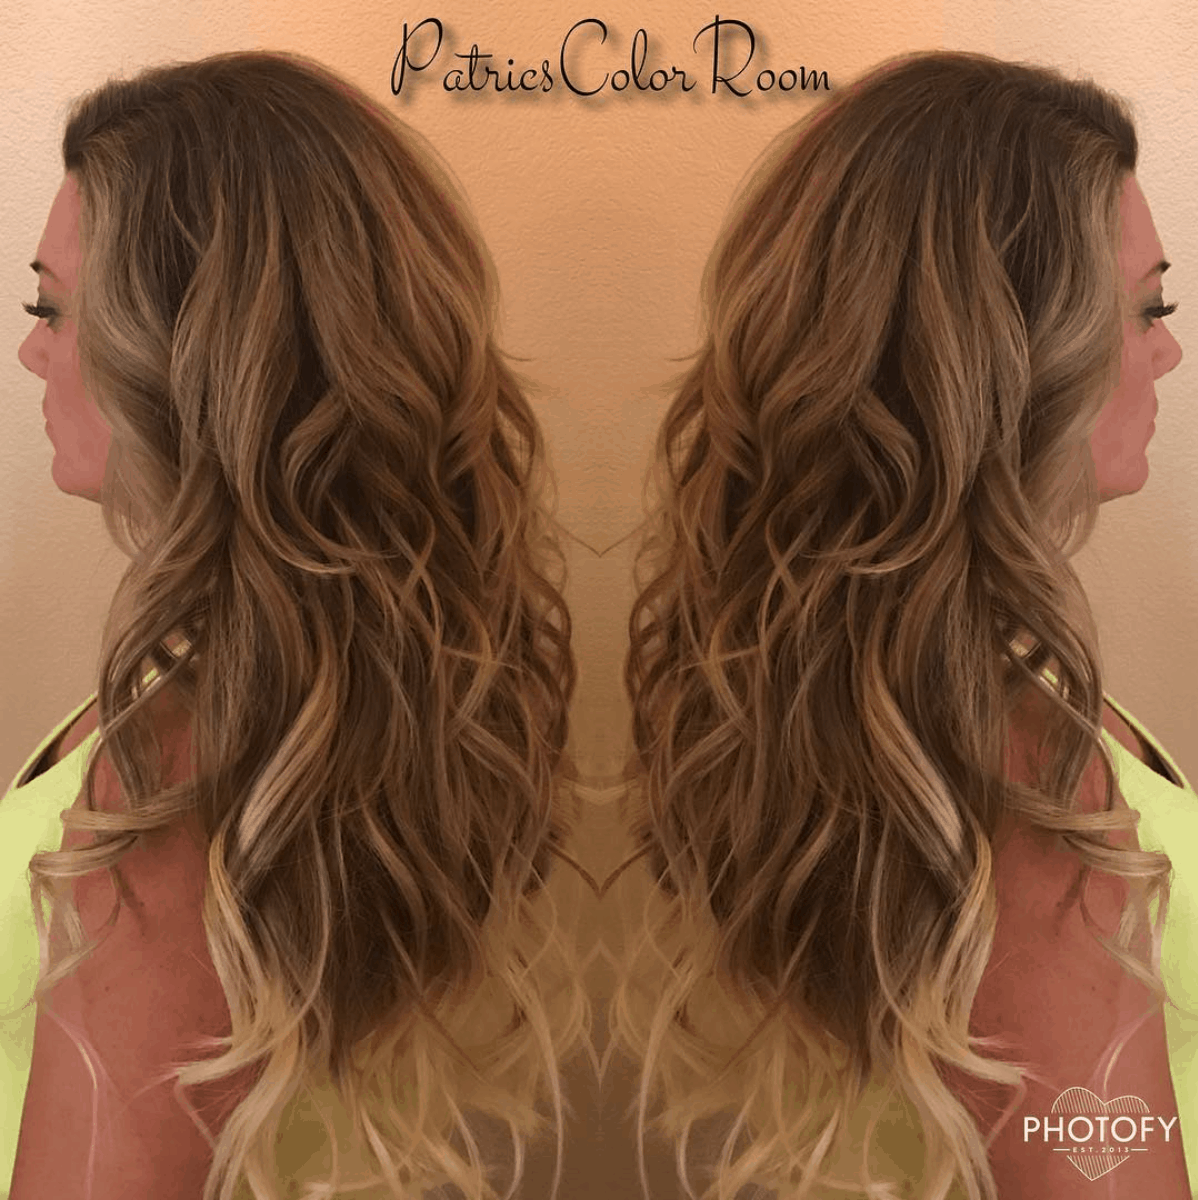 Hair Extensions Gallery Patrics Color Room